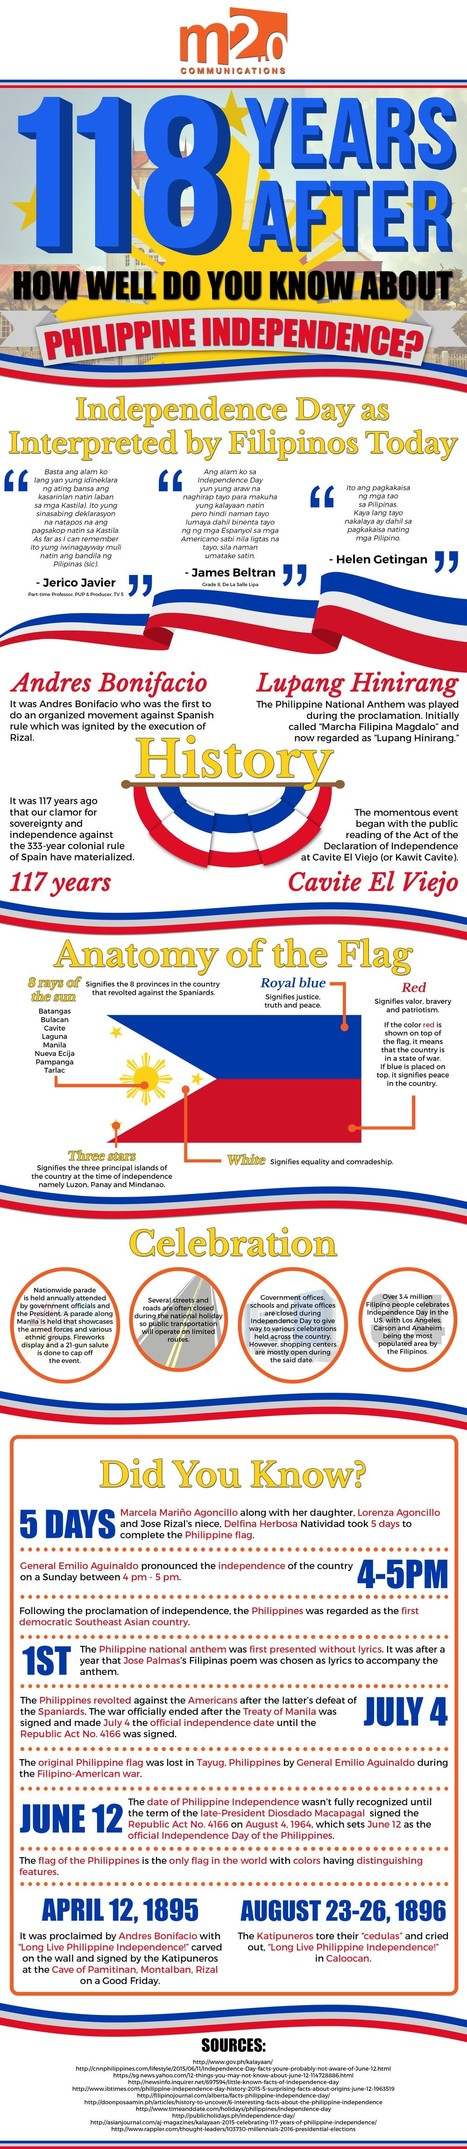 118 Years After: The History Behind Philippine Independence | All Infographics | Scoop.it